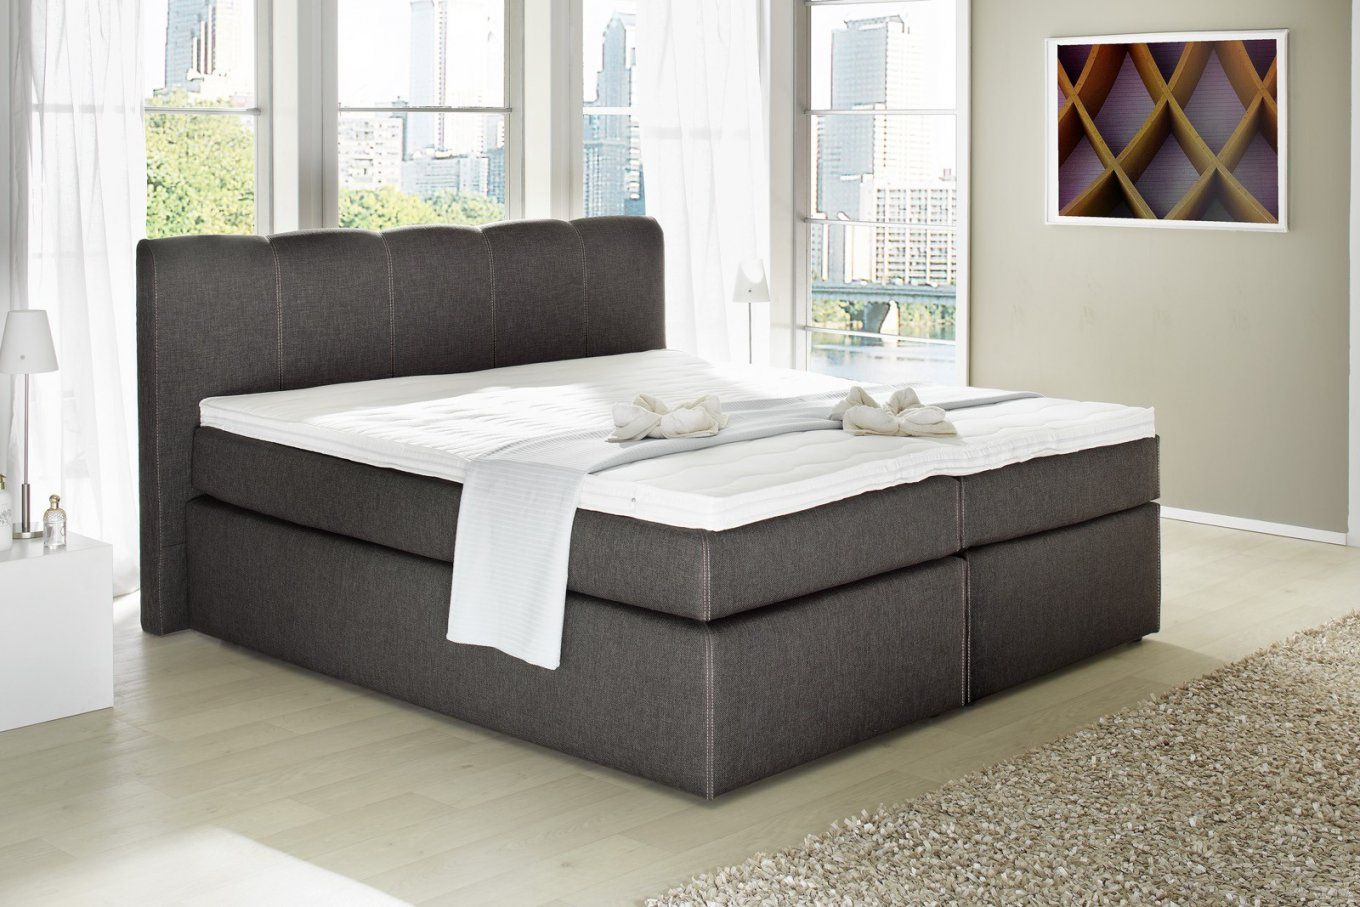 Harde Topper Boxspring Best Of Boxspring Bett Inkl Topper 180×200 von Boxspringbett Heaven 180X200 Photo